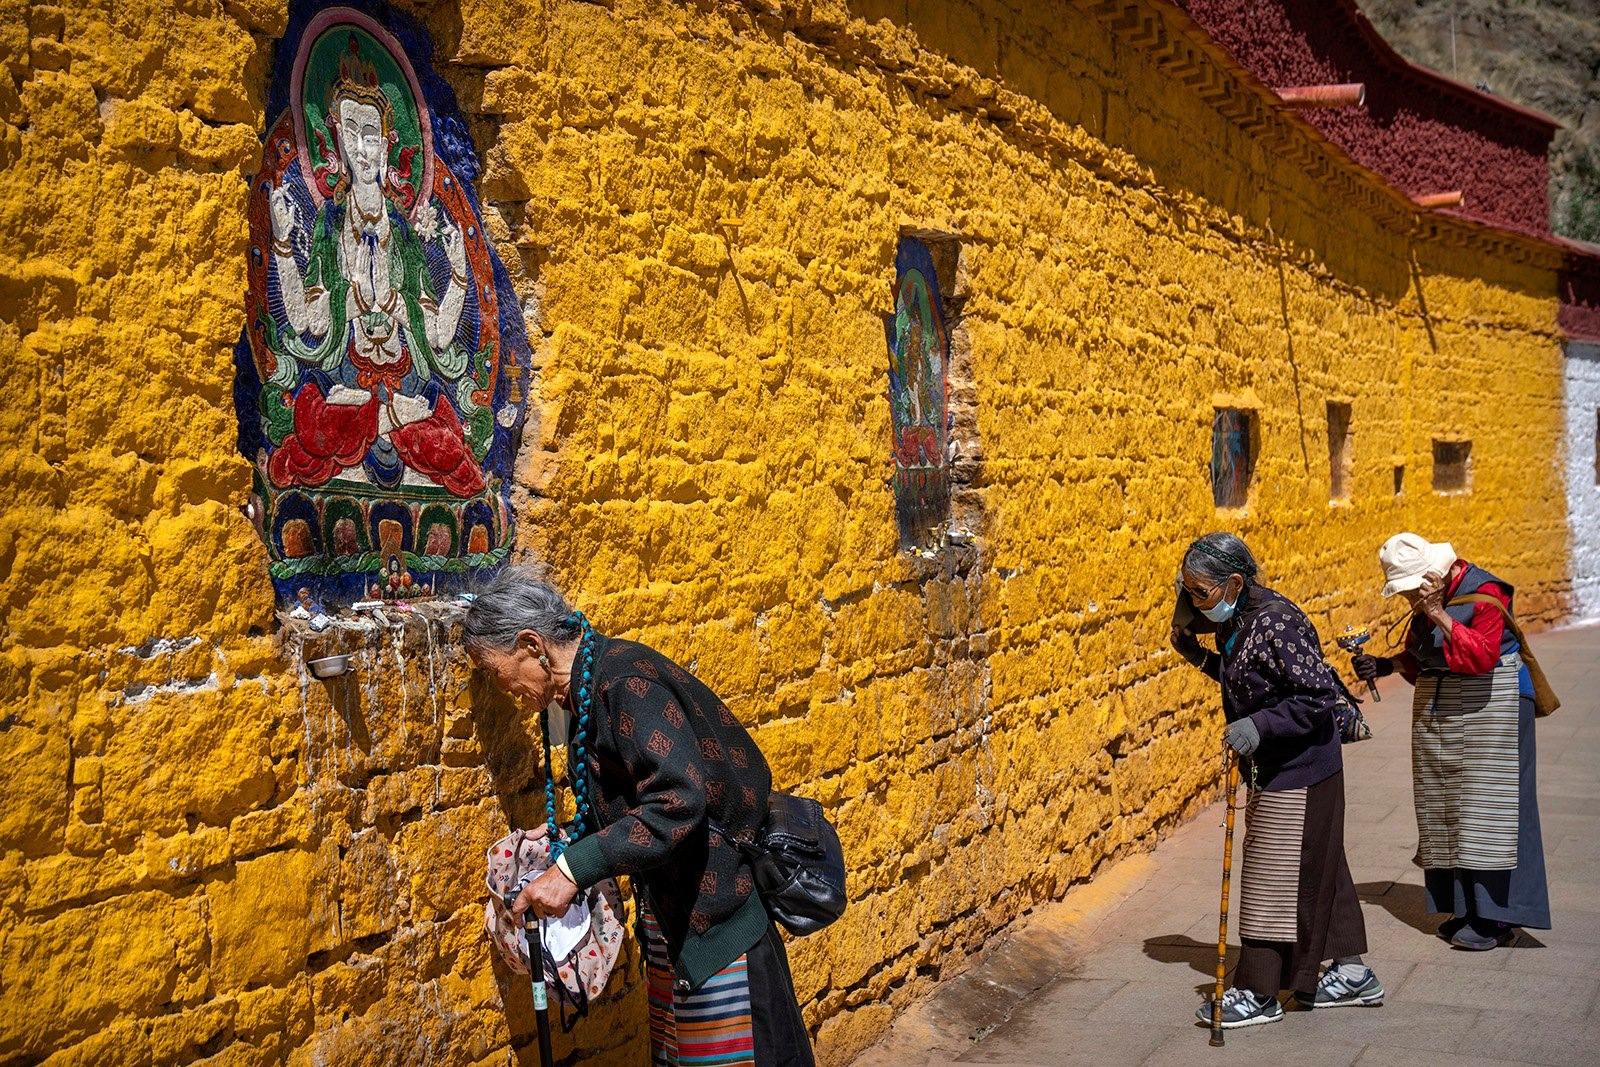 Buddhist faithful pray outside the Potala Palace in Lhasa in western China's Tibet Autonomous Region, as seen during a government organized visit for foreign journalists, Tuesday, June 1, 2021. (AP Photo/Mark Schiefelbein)